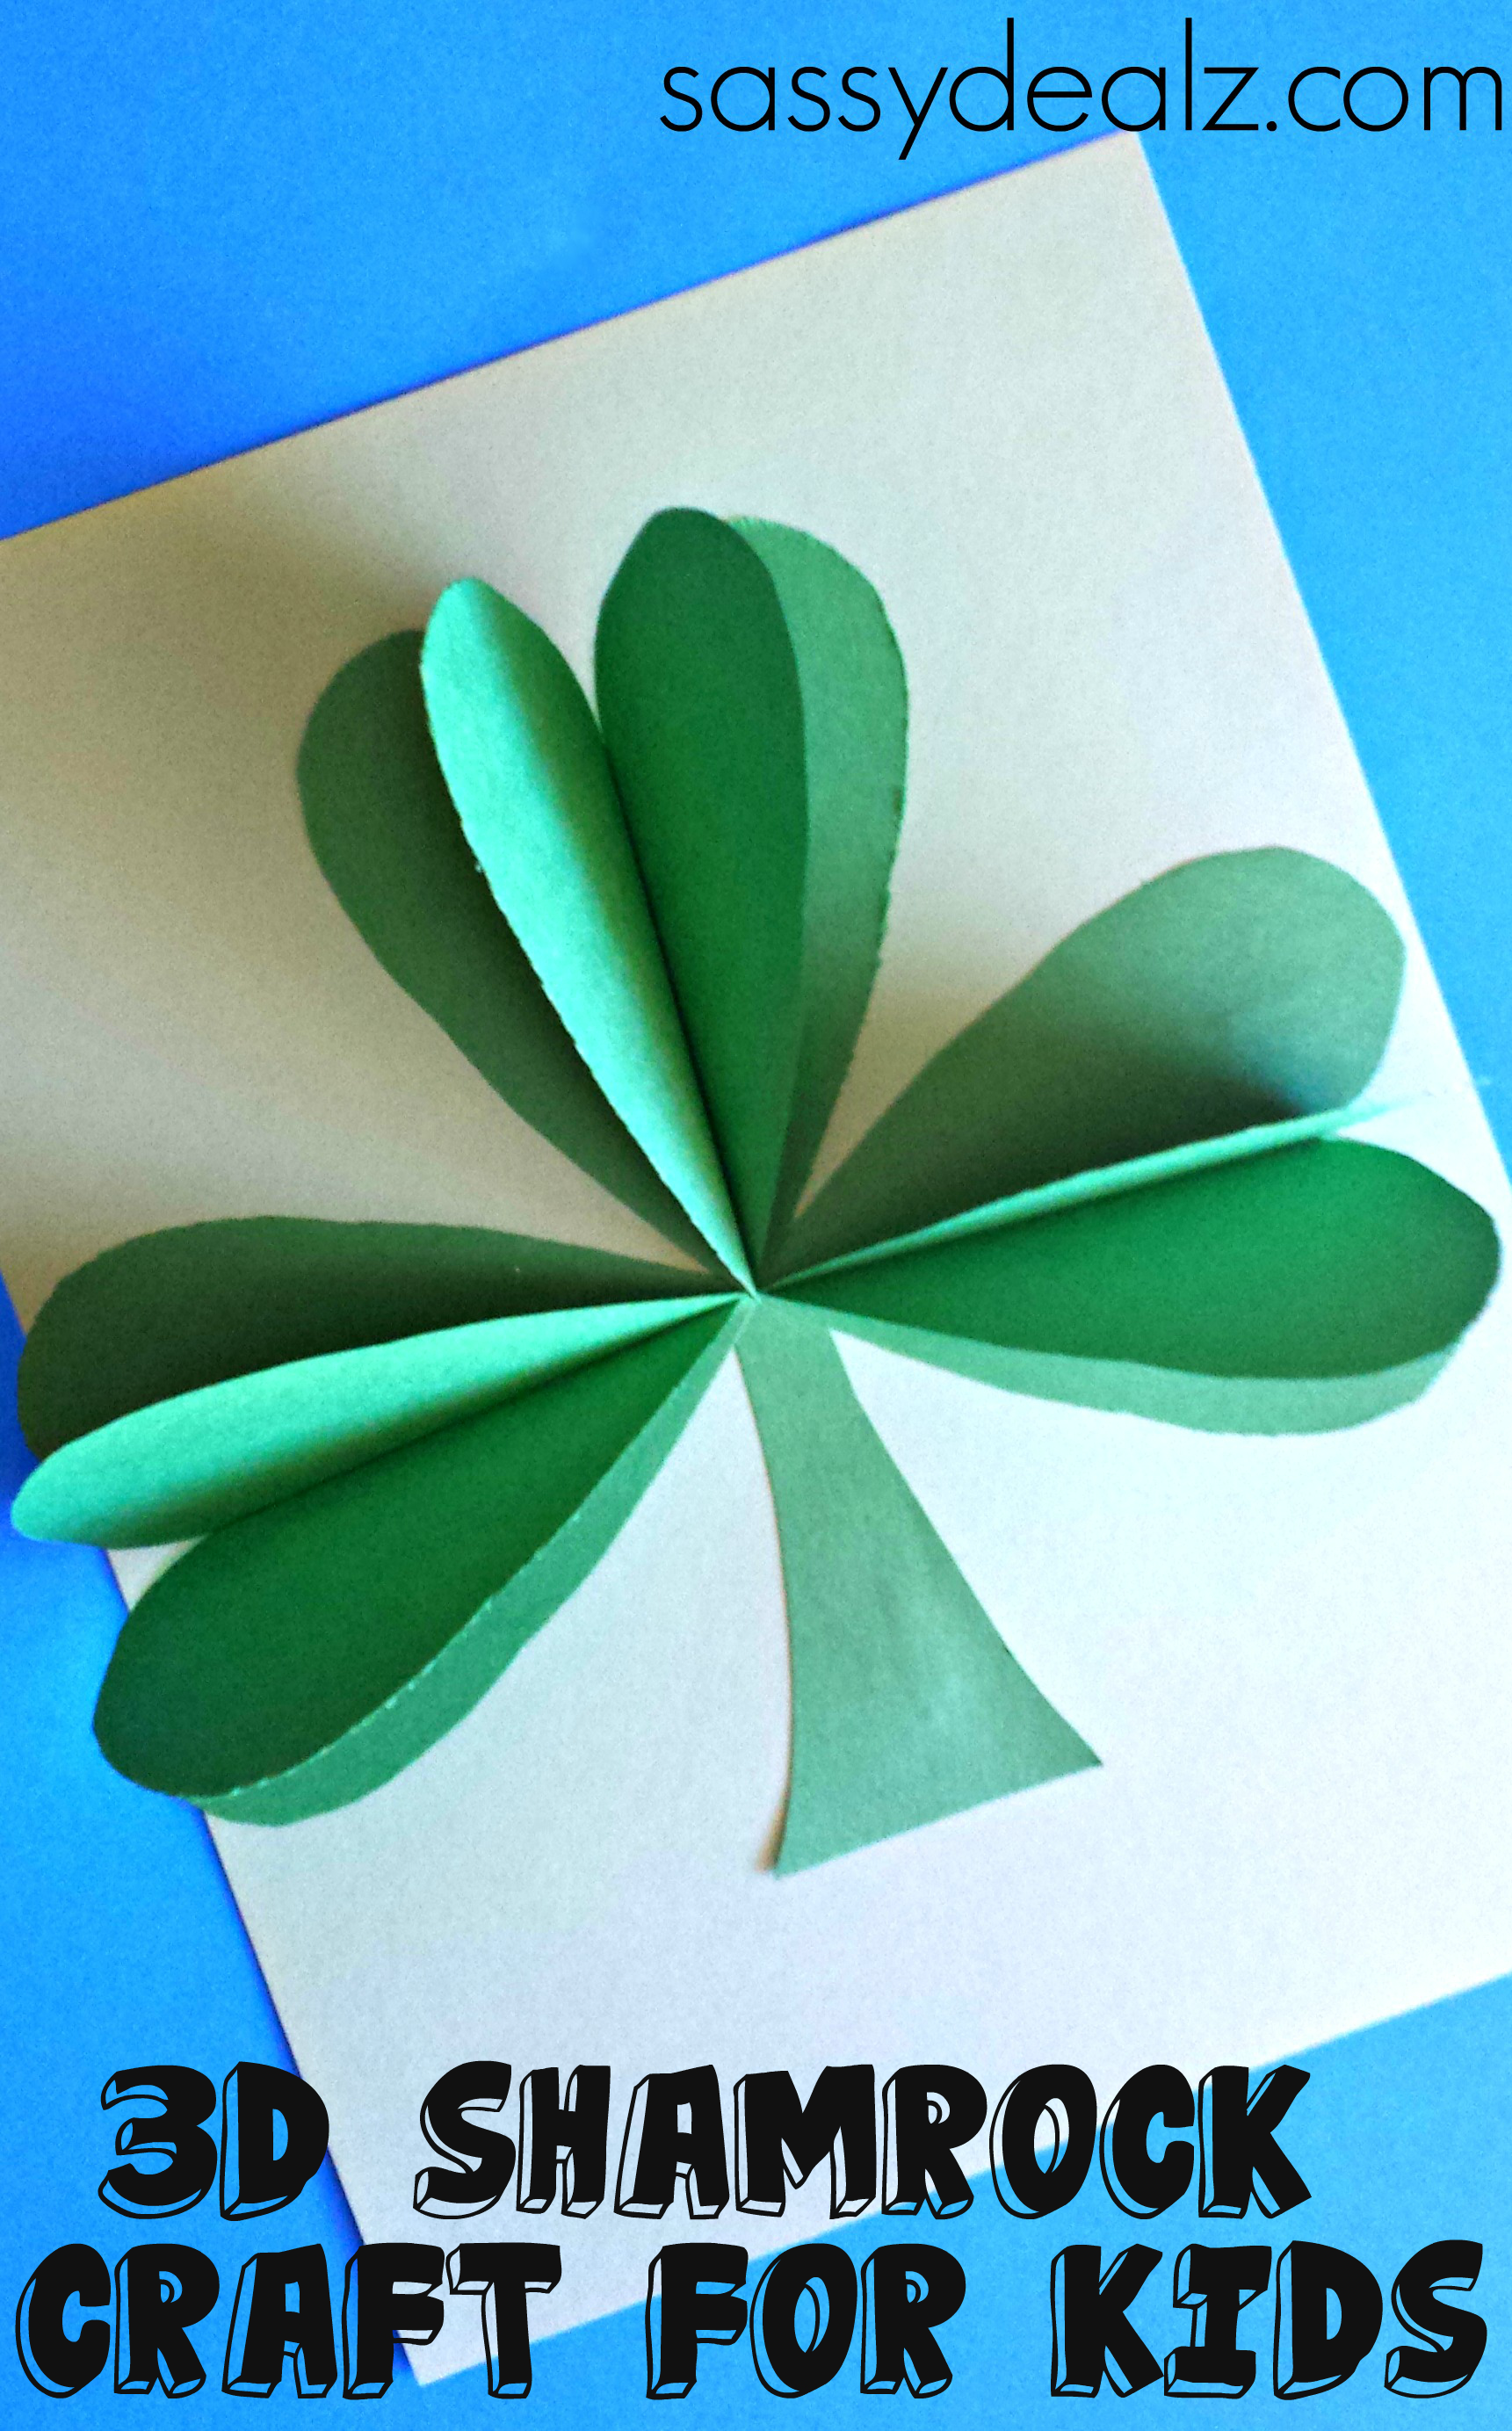 St patricks day preschool crafts - 3d Paper Shamrock Craft For St Patrick S Day